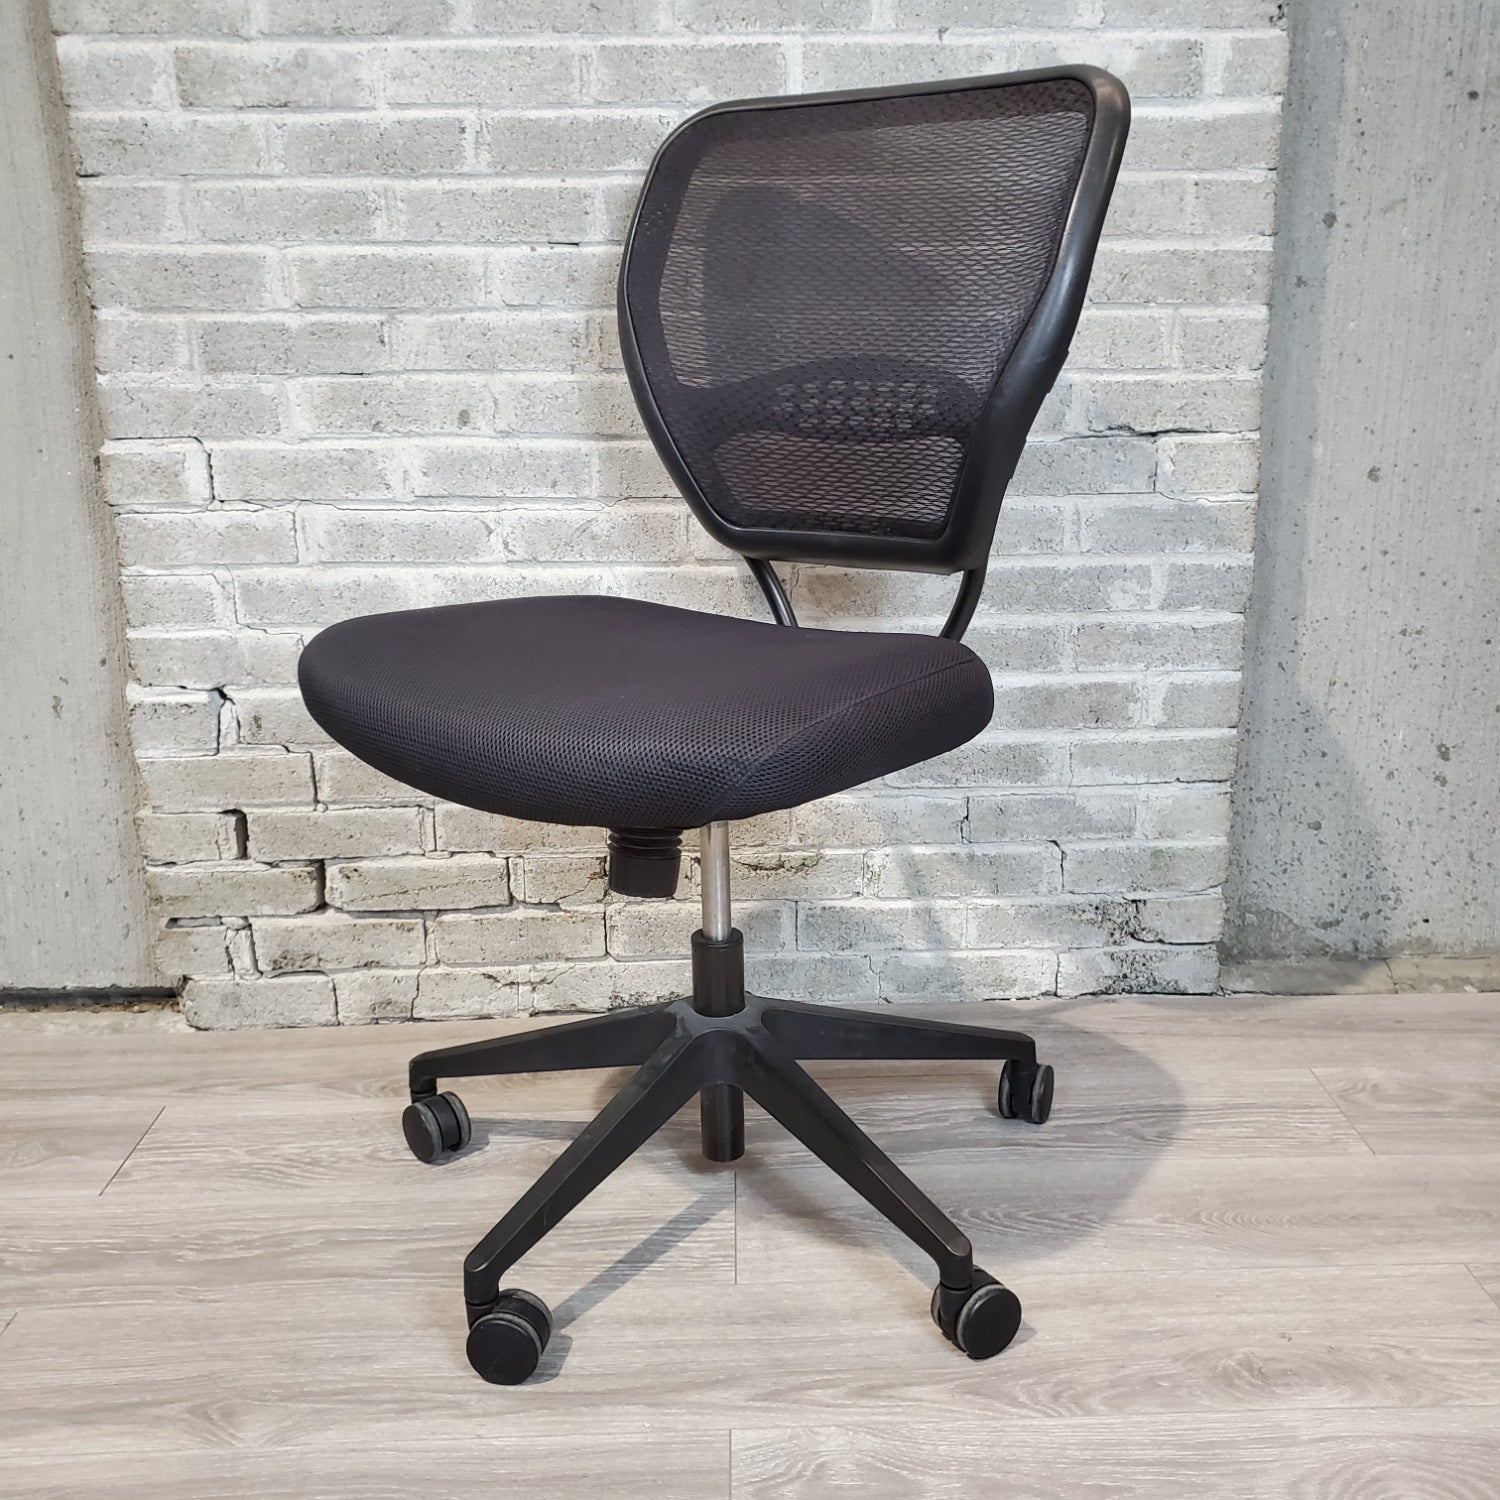 Pre-Owned - Office Star Mesh Back Task Chair - Duckys Office Furniture